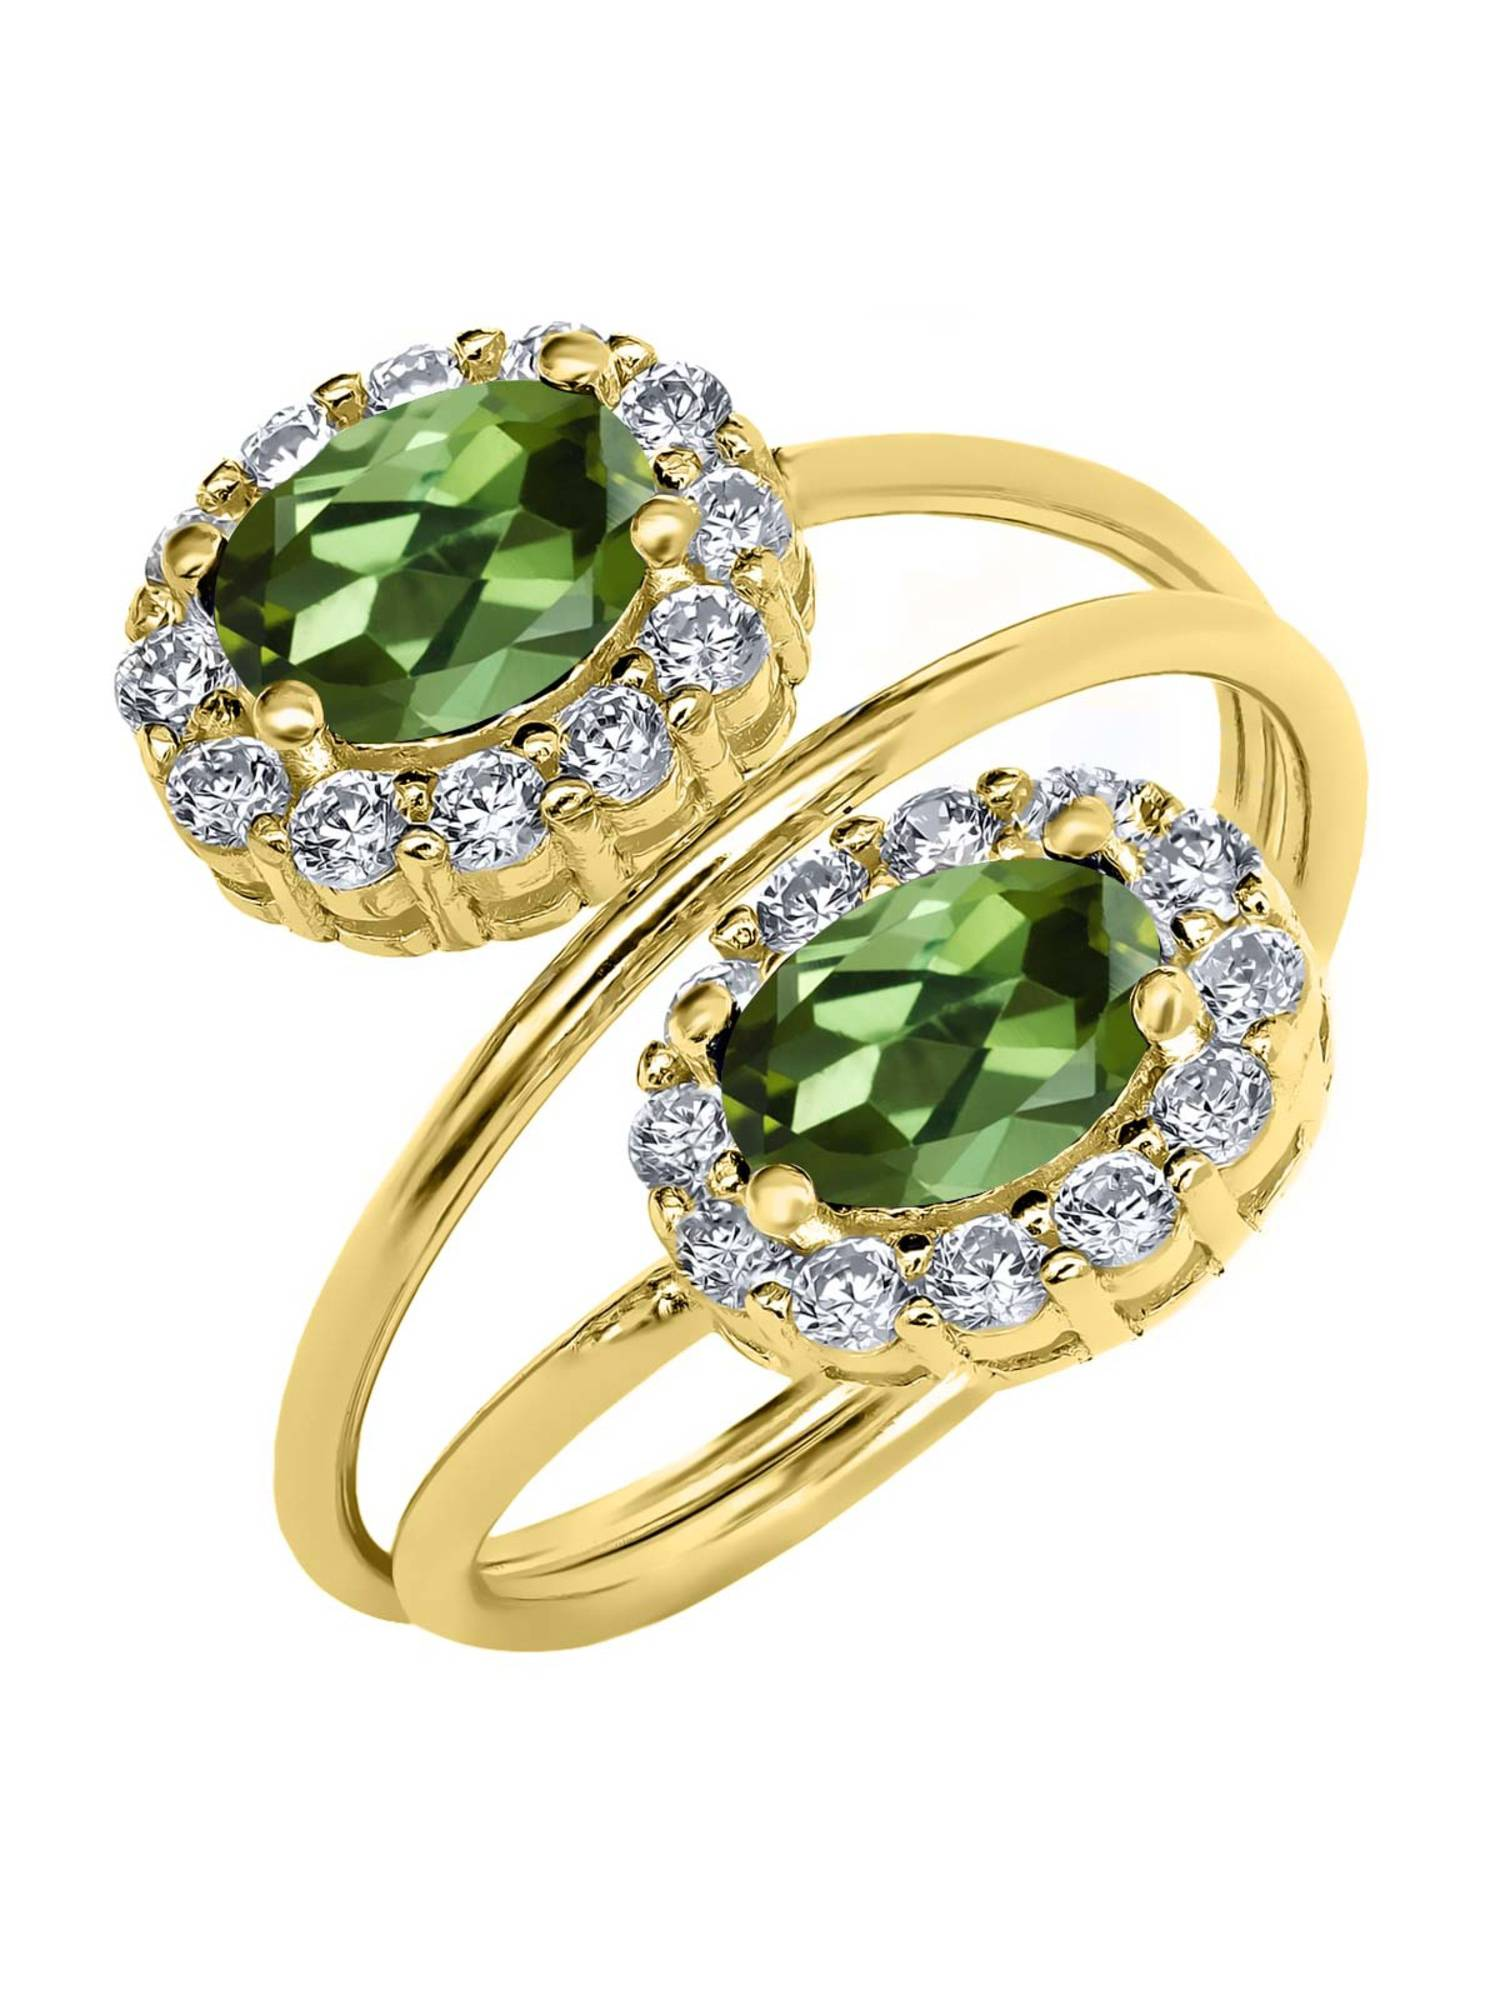 2.48 Ct Oval Green Tourmaline 18K Yellow Gold Plated Silver Ring by